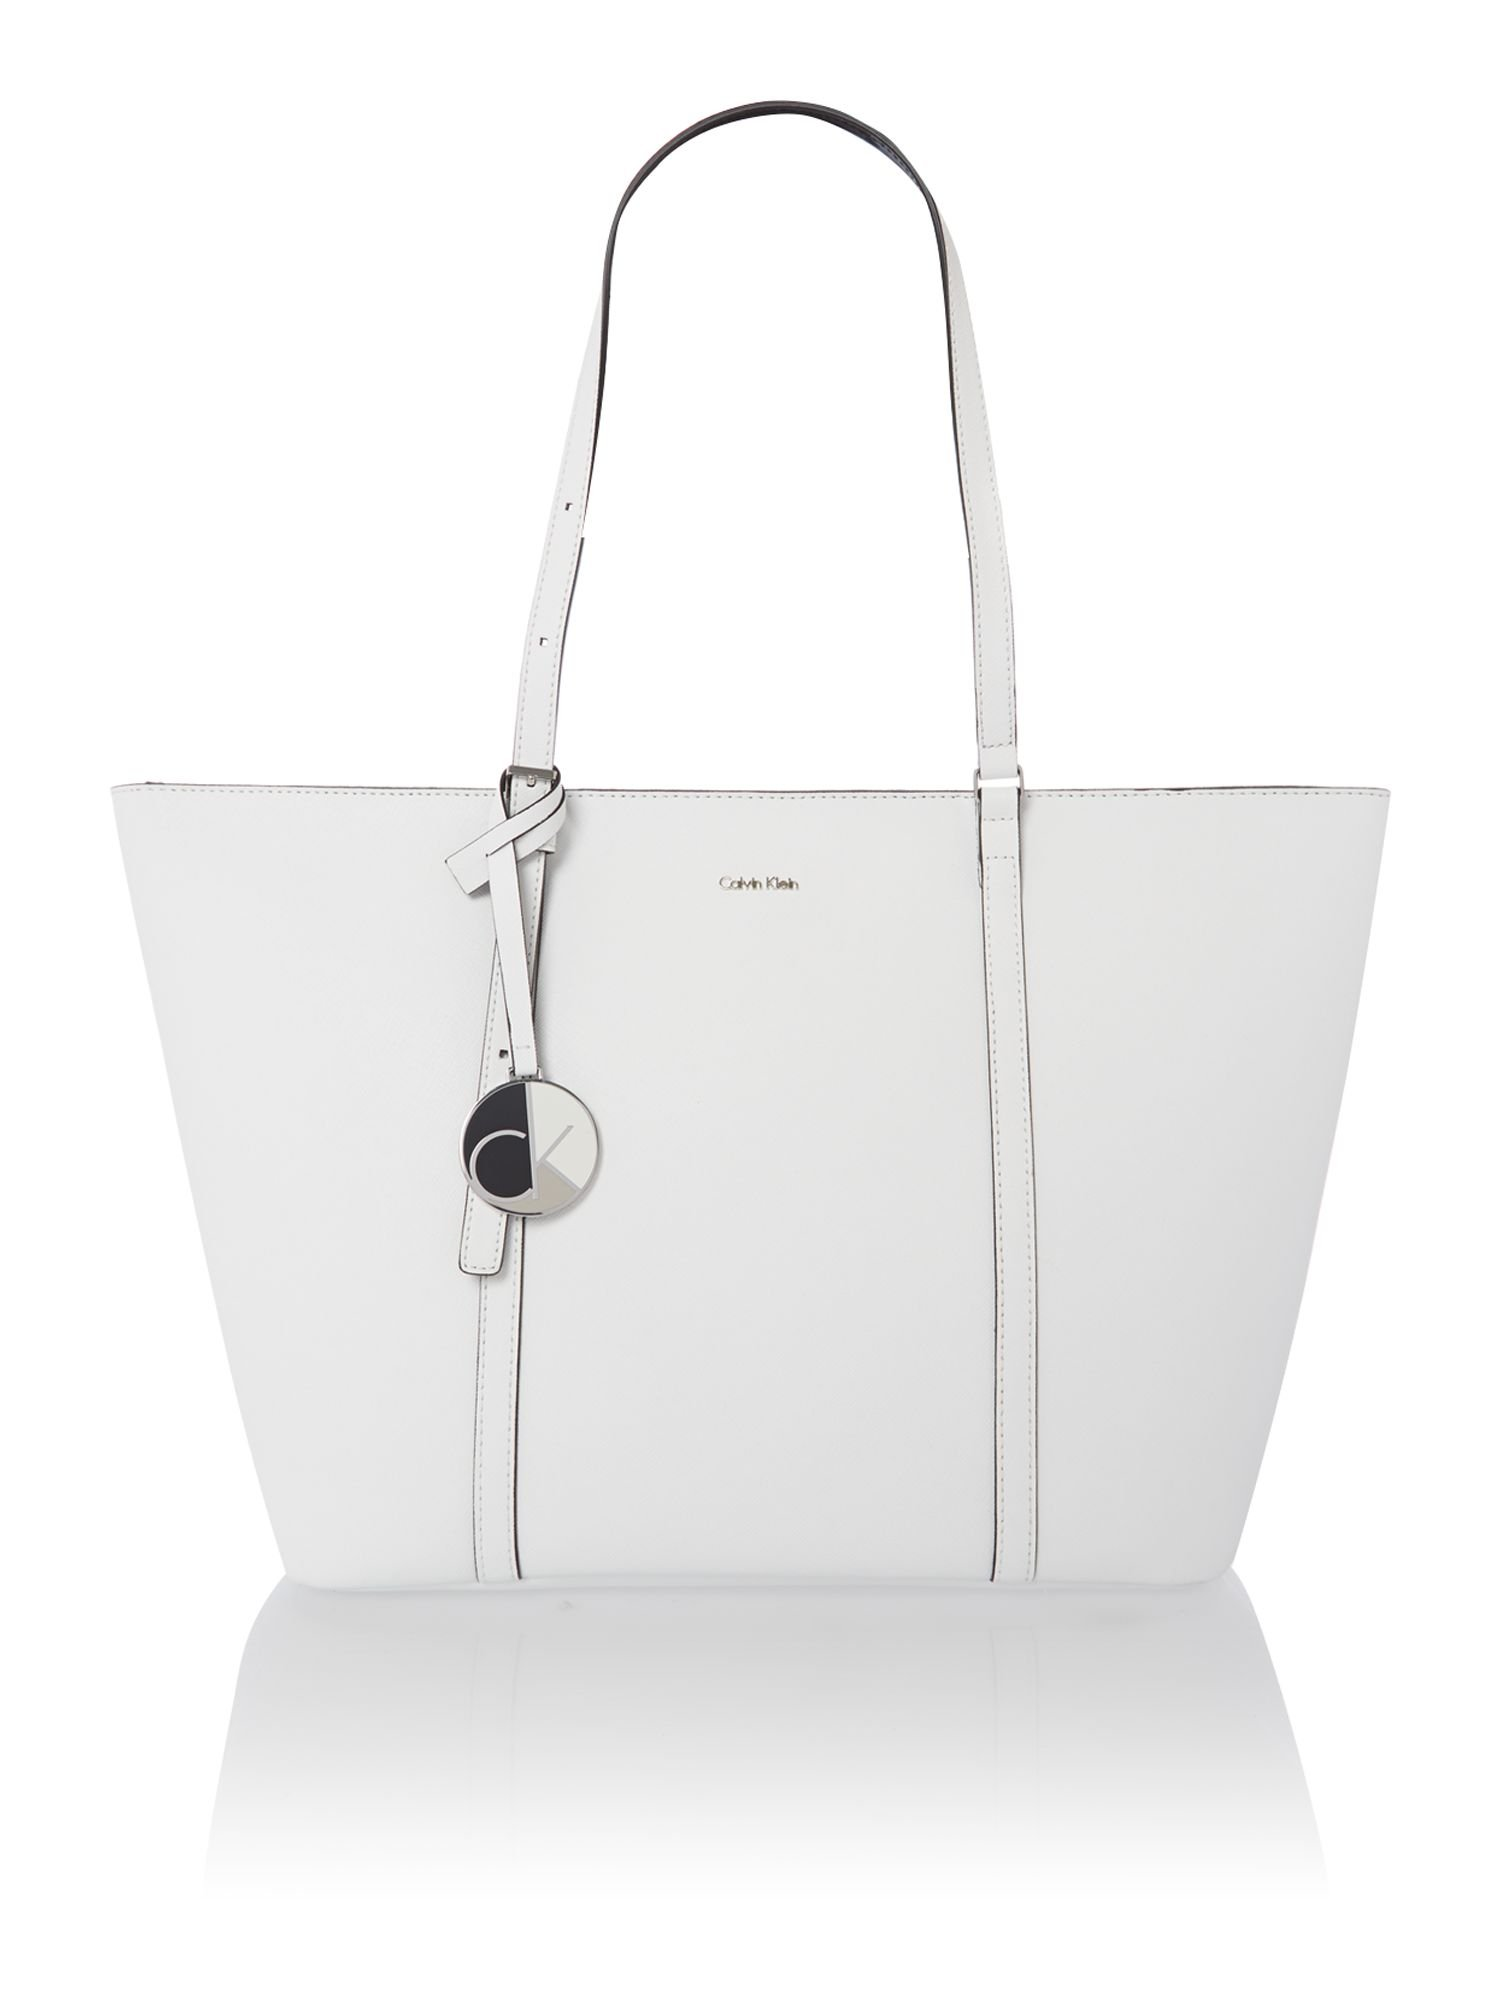 Calvin klein Sophie Large White Tote Bag in White | Lyst